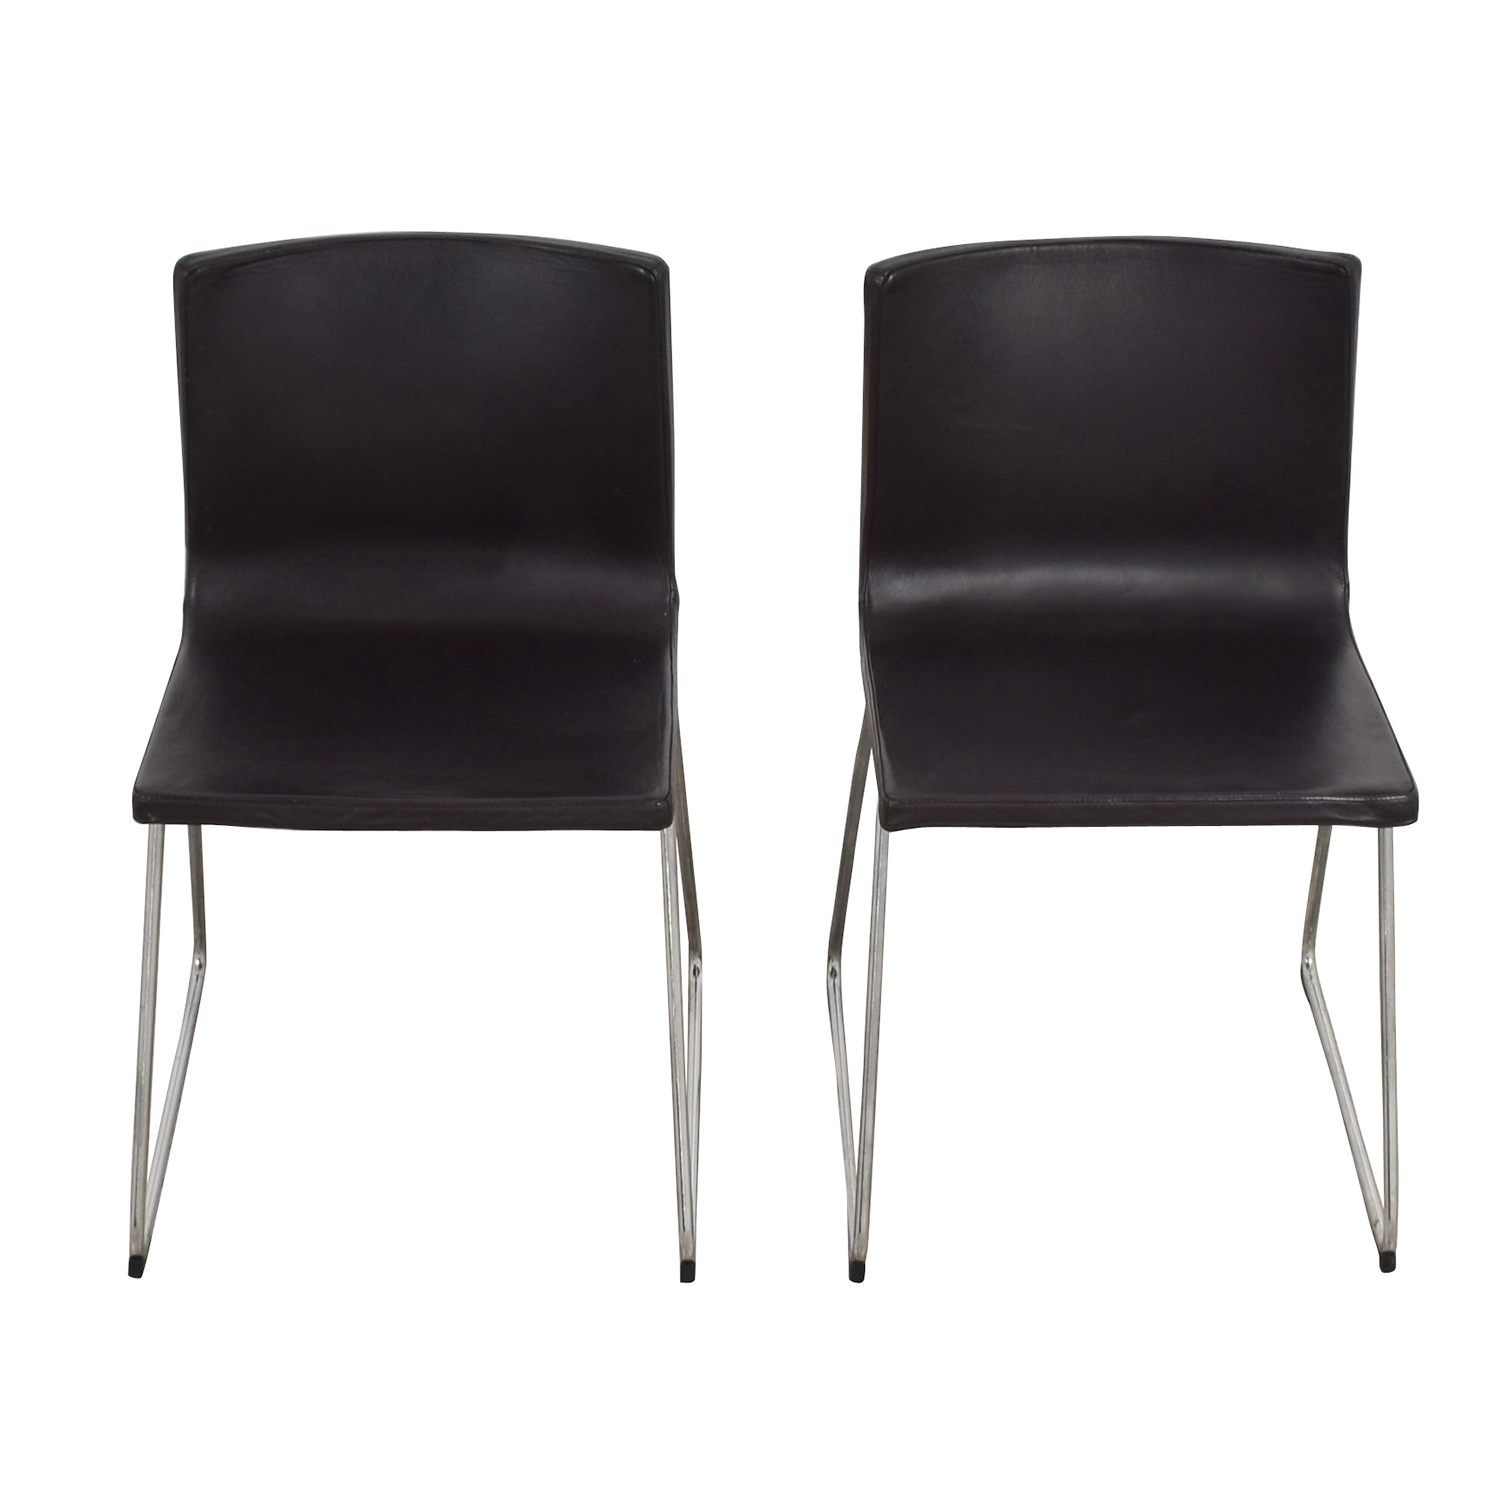 Ikea Black Chair 52 Off Ikea Ikea Black Accent Chairs Chairs